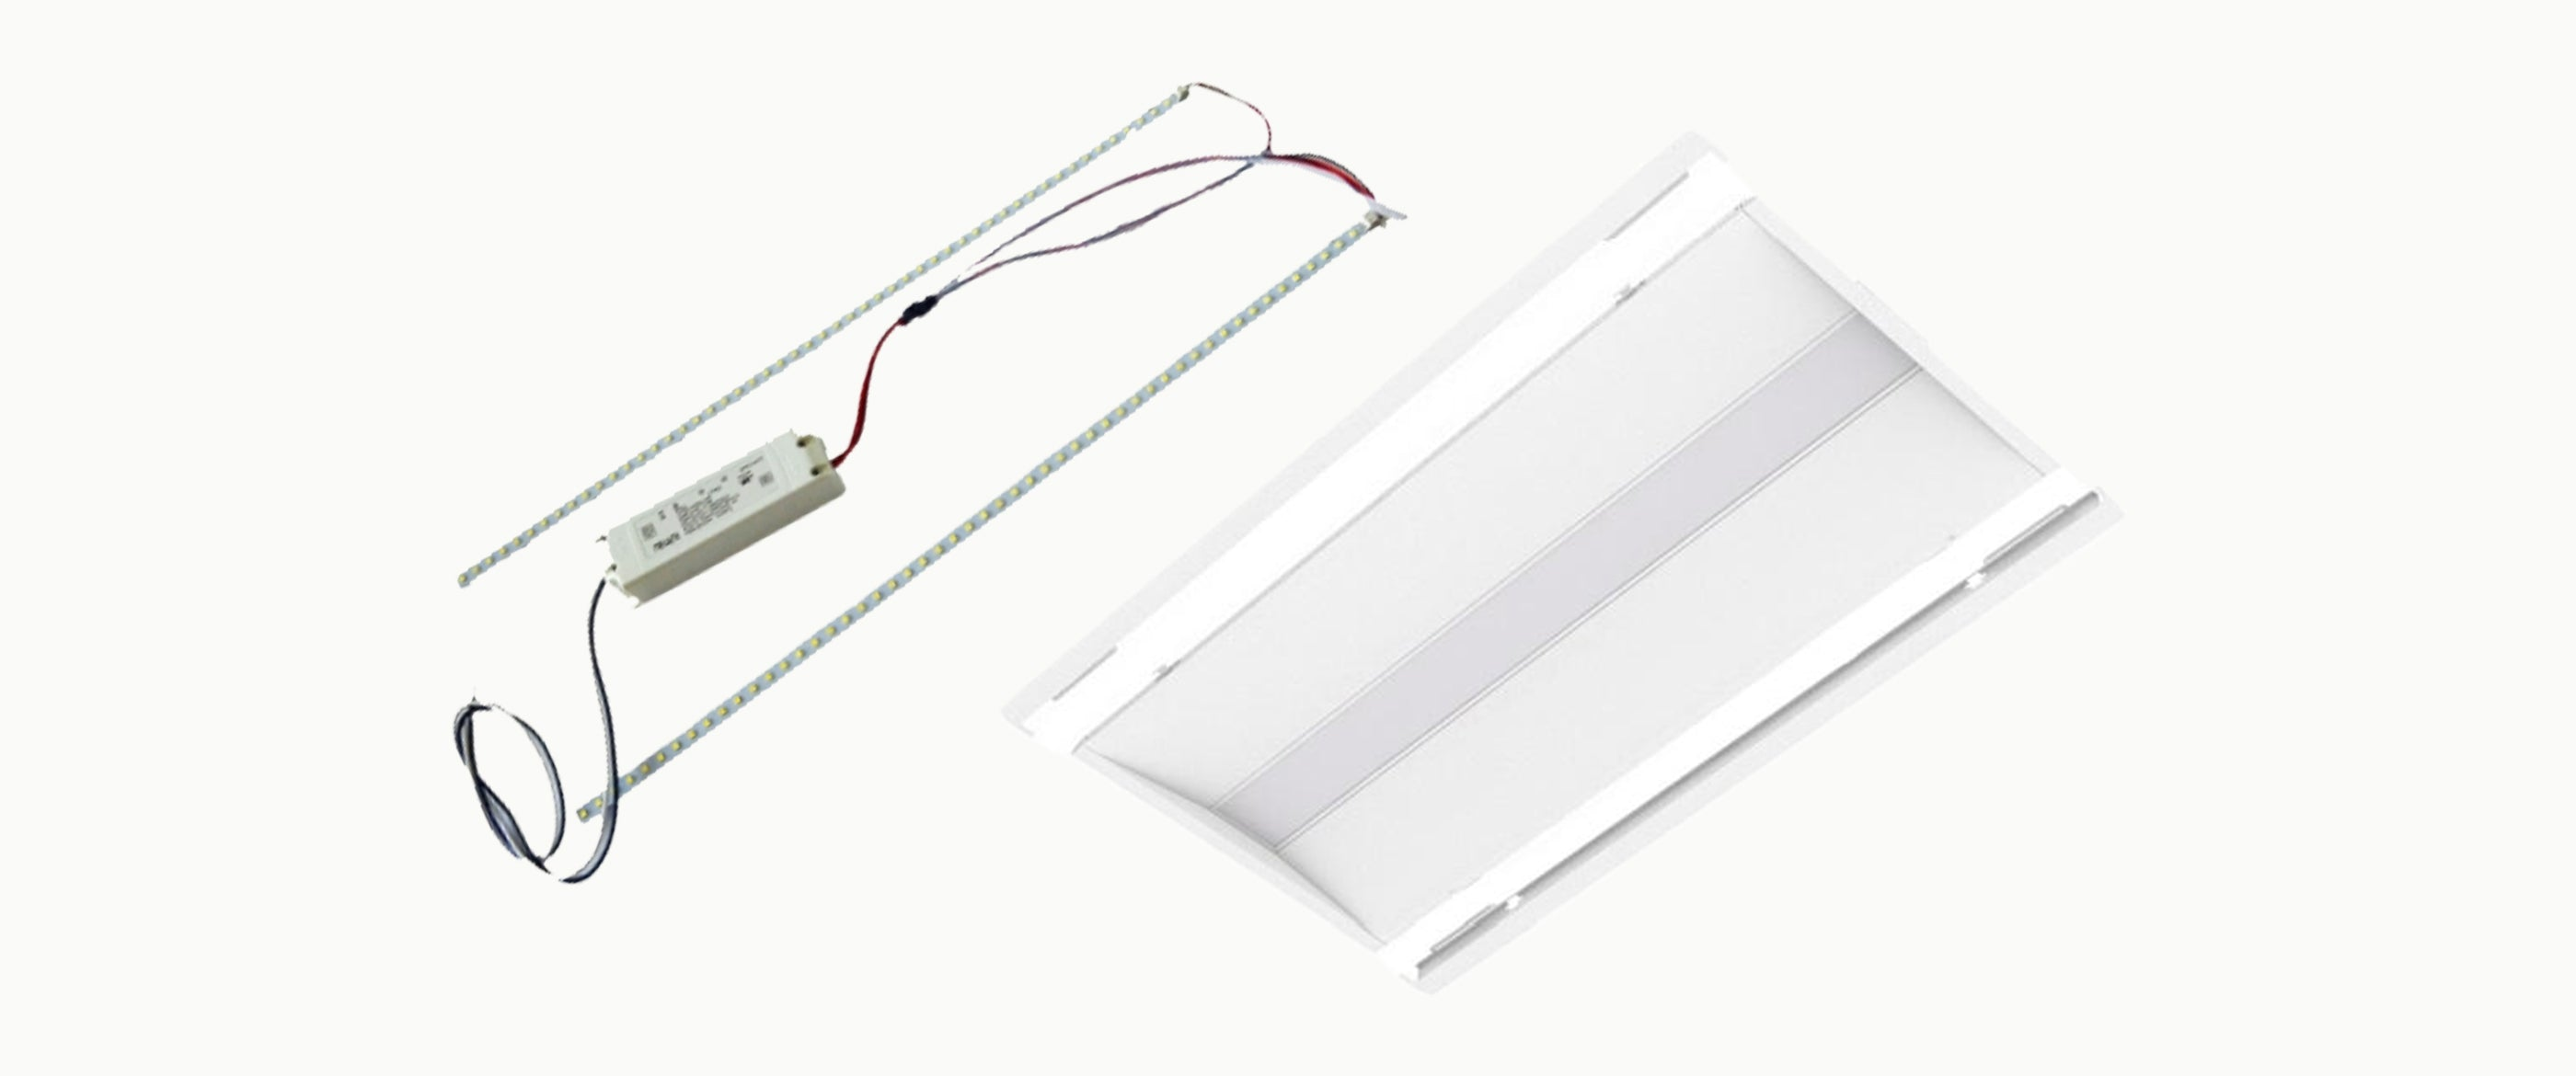 2 x 4 LED Troffer / Recessed Retrofit Lighting Kits